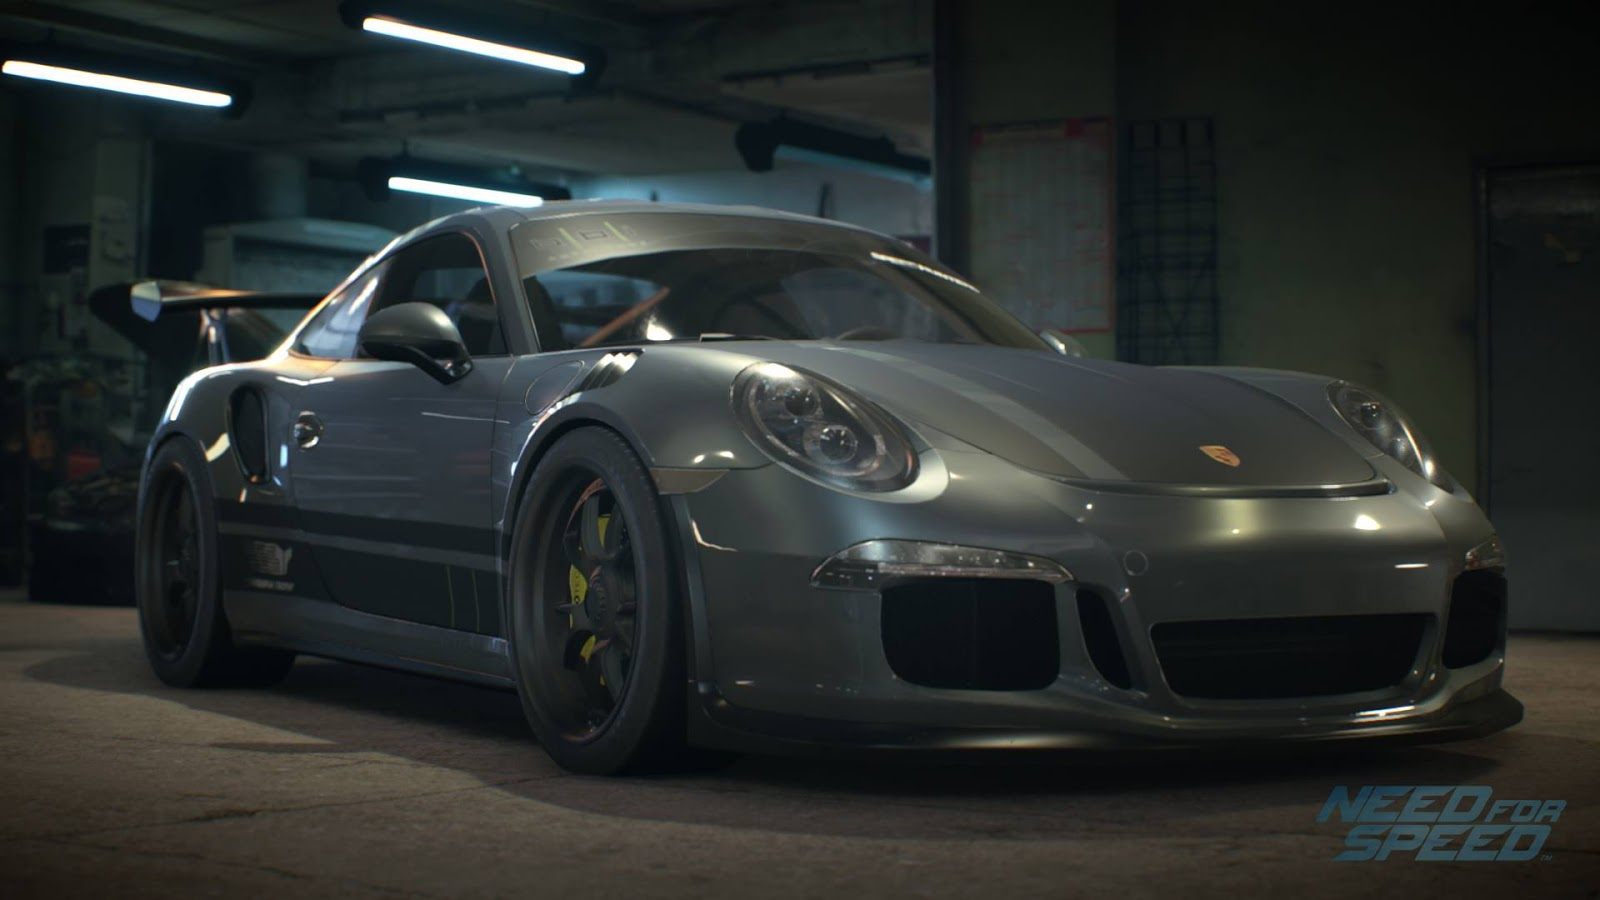 Hd Wallpapers Need For Speed 2015 Hd Wallpapers